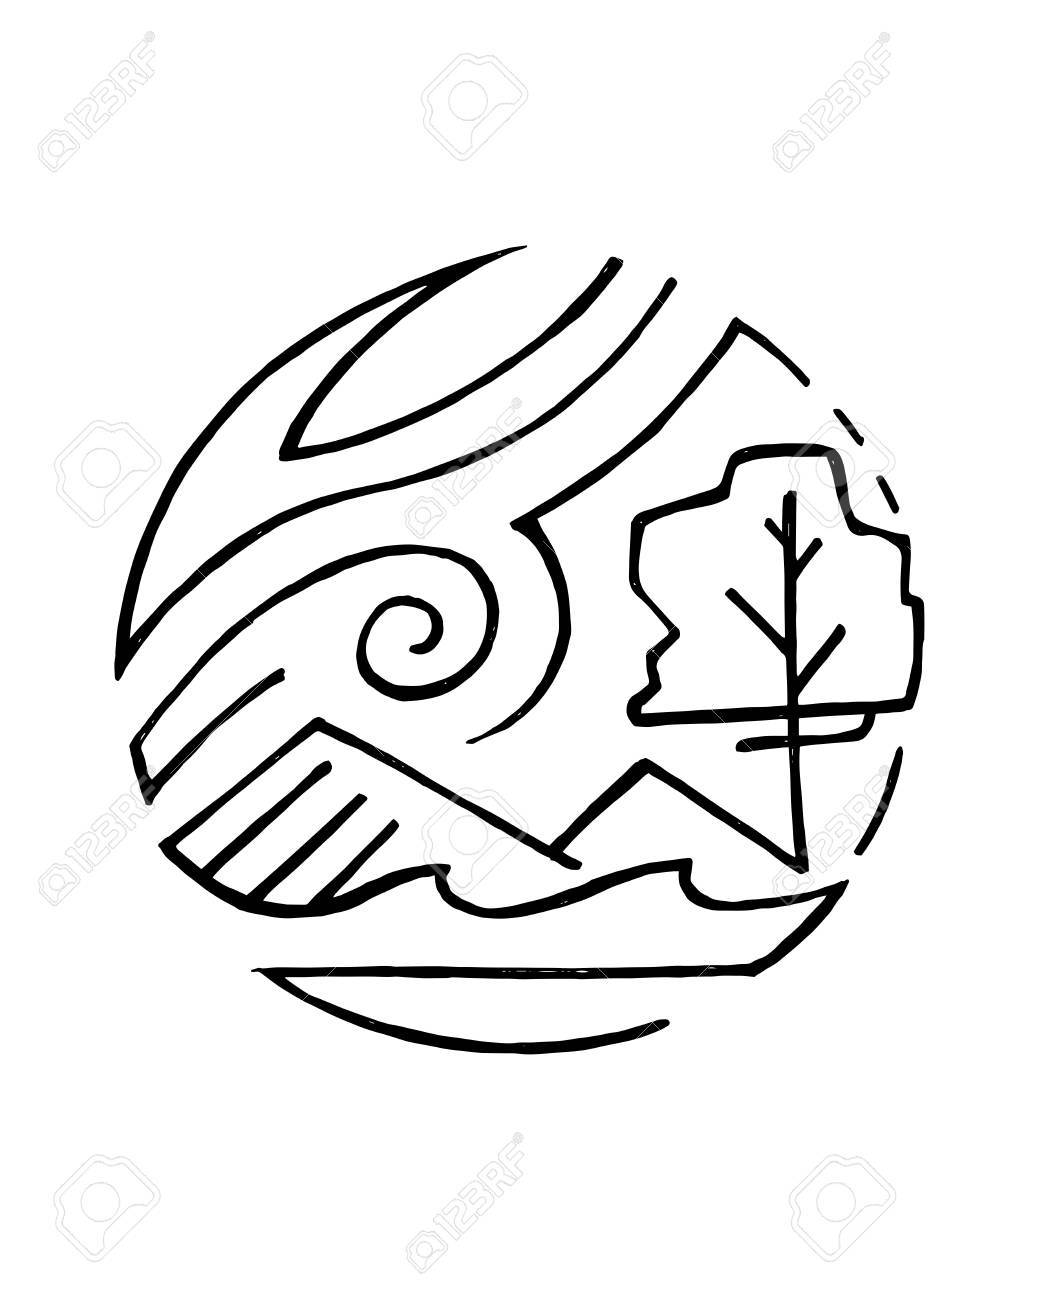 1039x1300 Hand Drawn Vector Illustration Or Drawing Of A Nature Symbol With